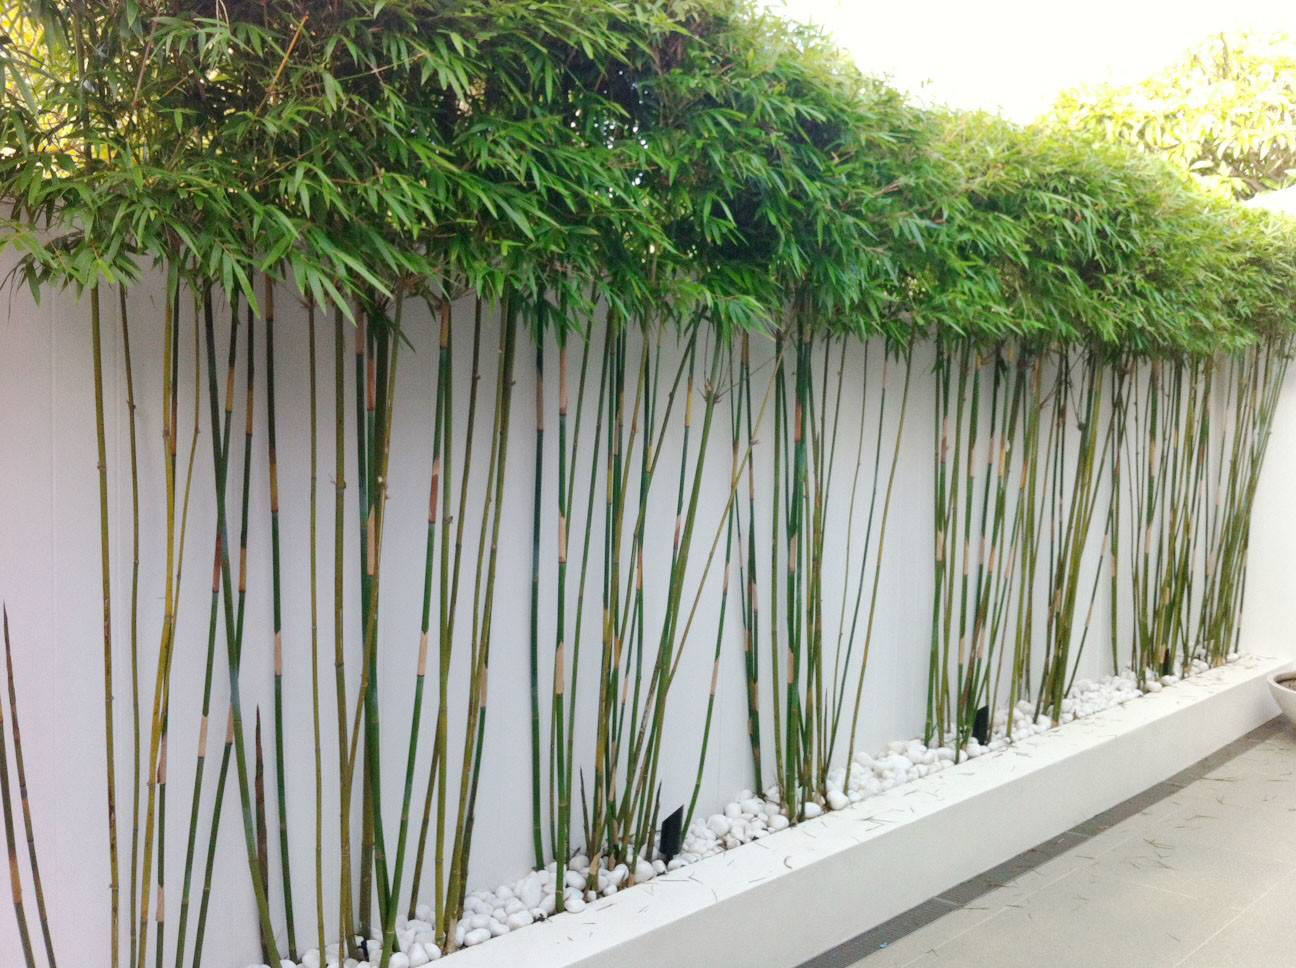 Planting Privacy Bamboo